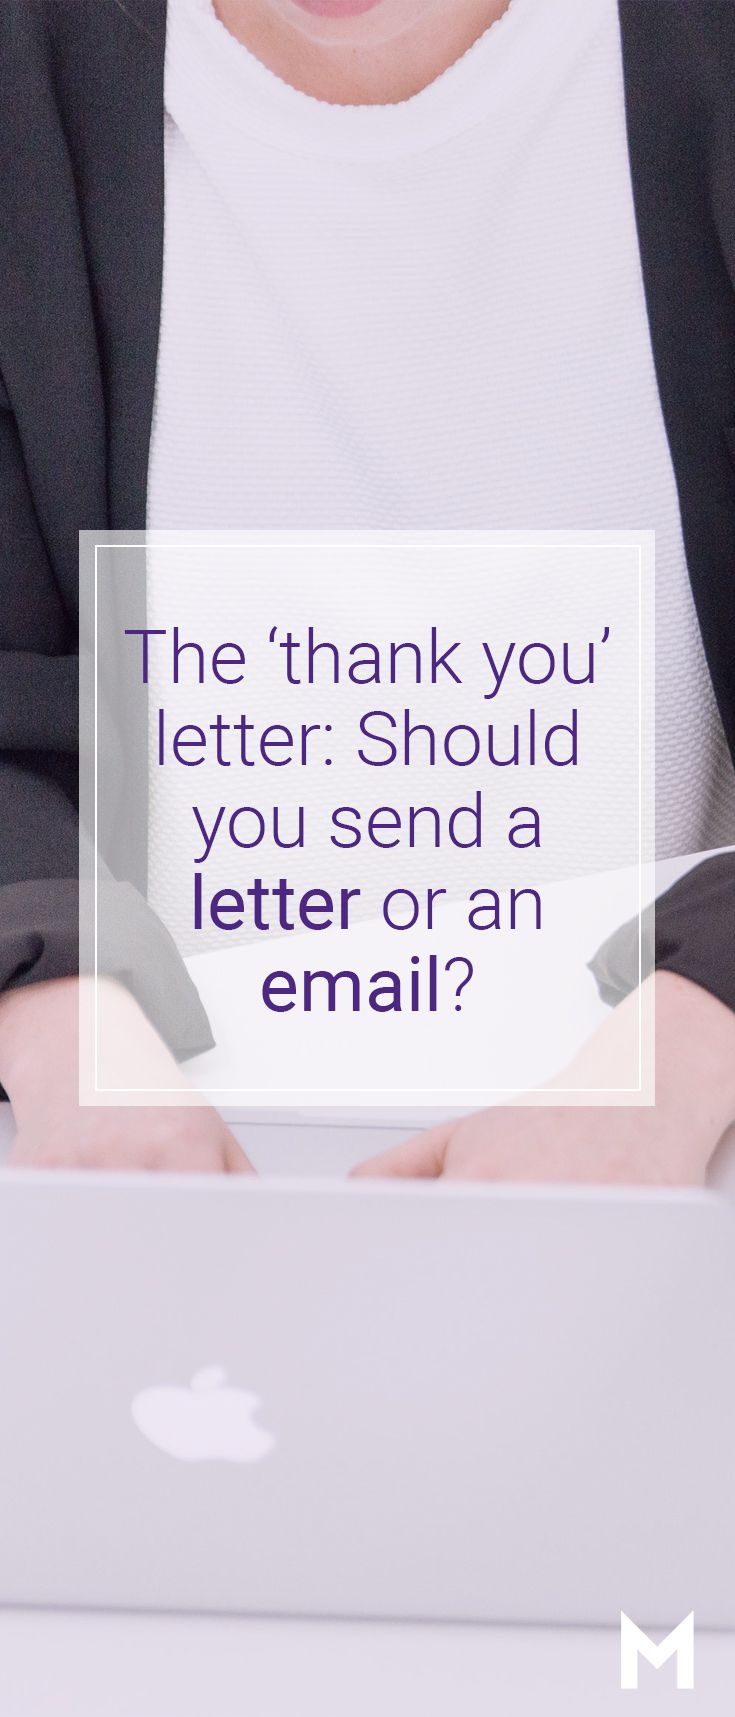 Job Interview Thank You Letter Vs Email  Job Search Etiquette